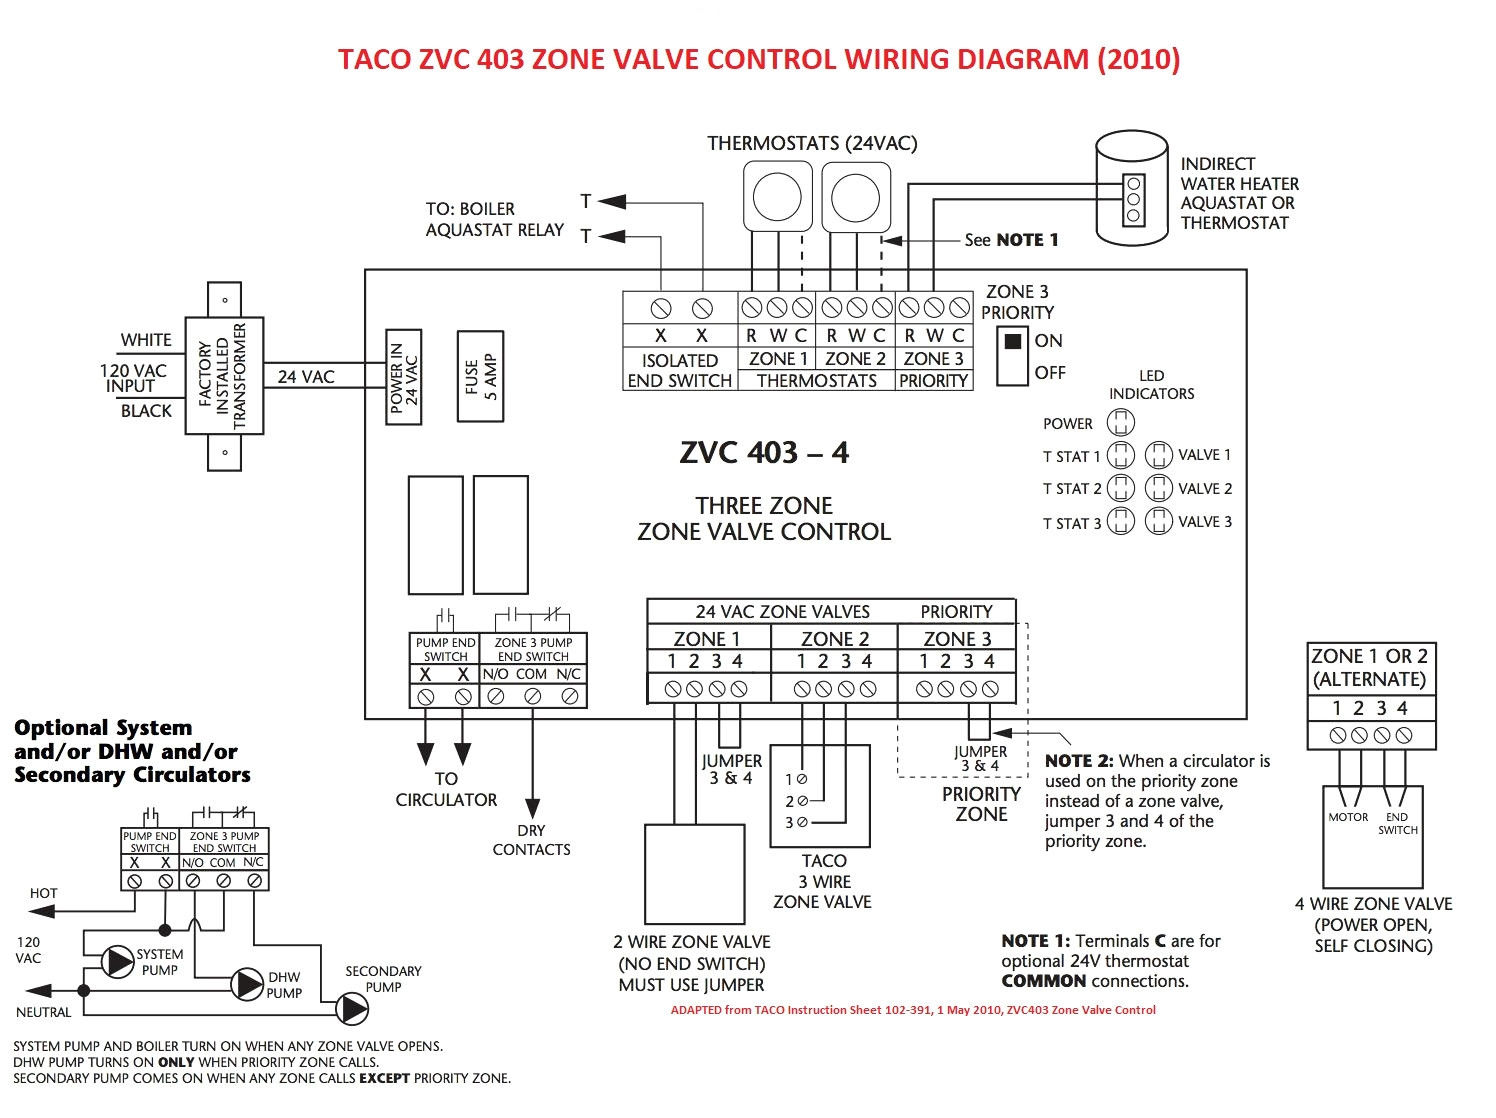 Taco Cartridge Circulator 007 F5 Wiring Diagram